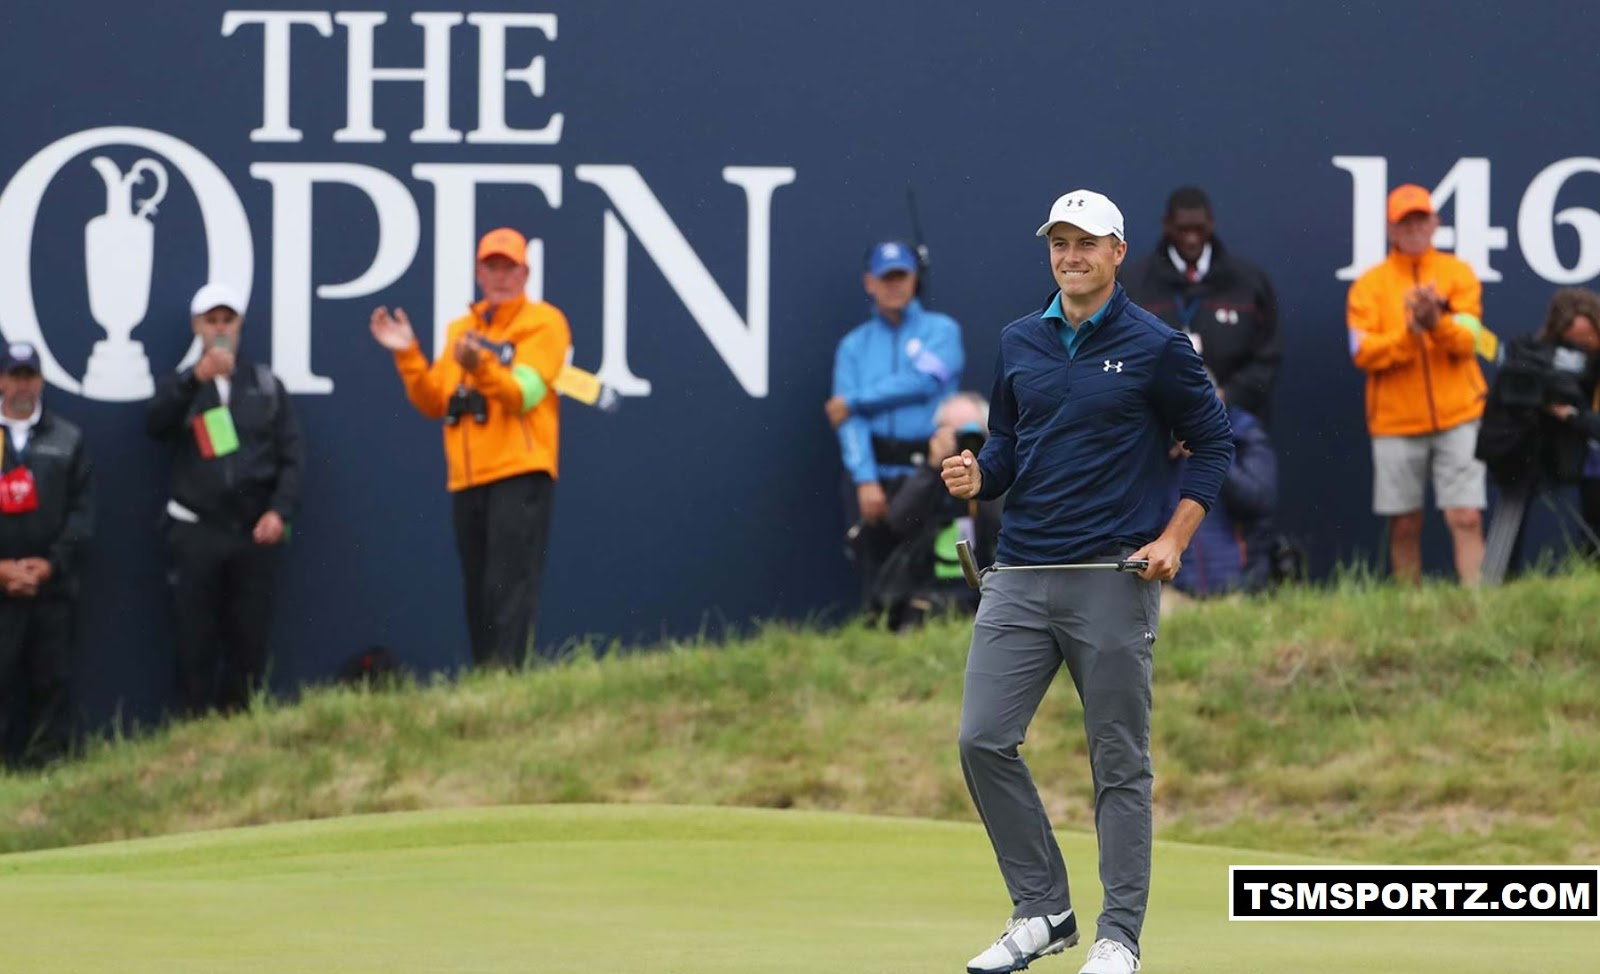 The Open Championship Prize Money 2018 Revealed